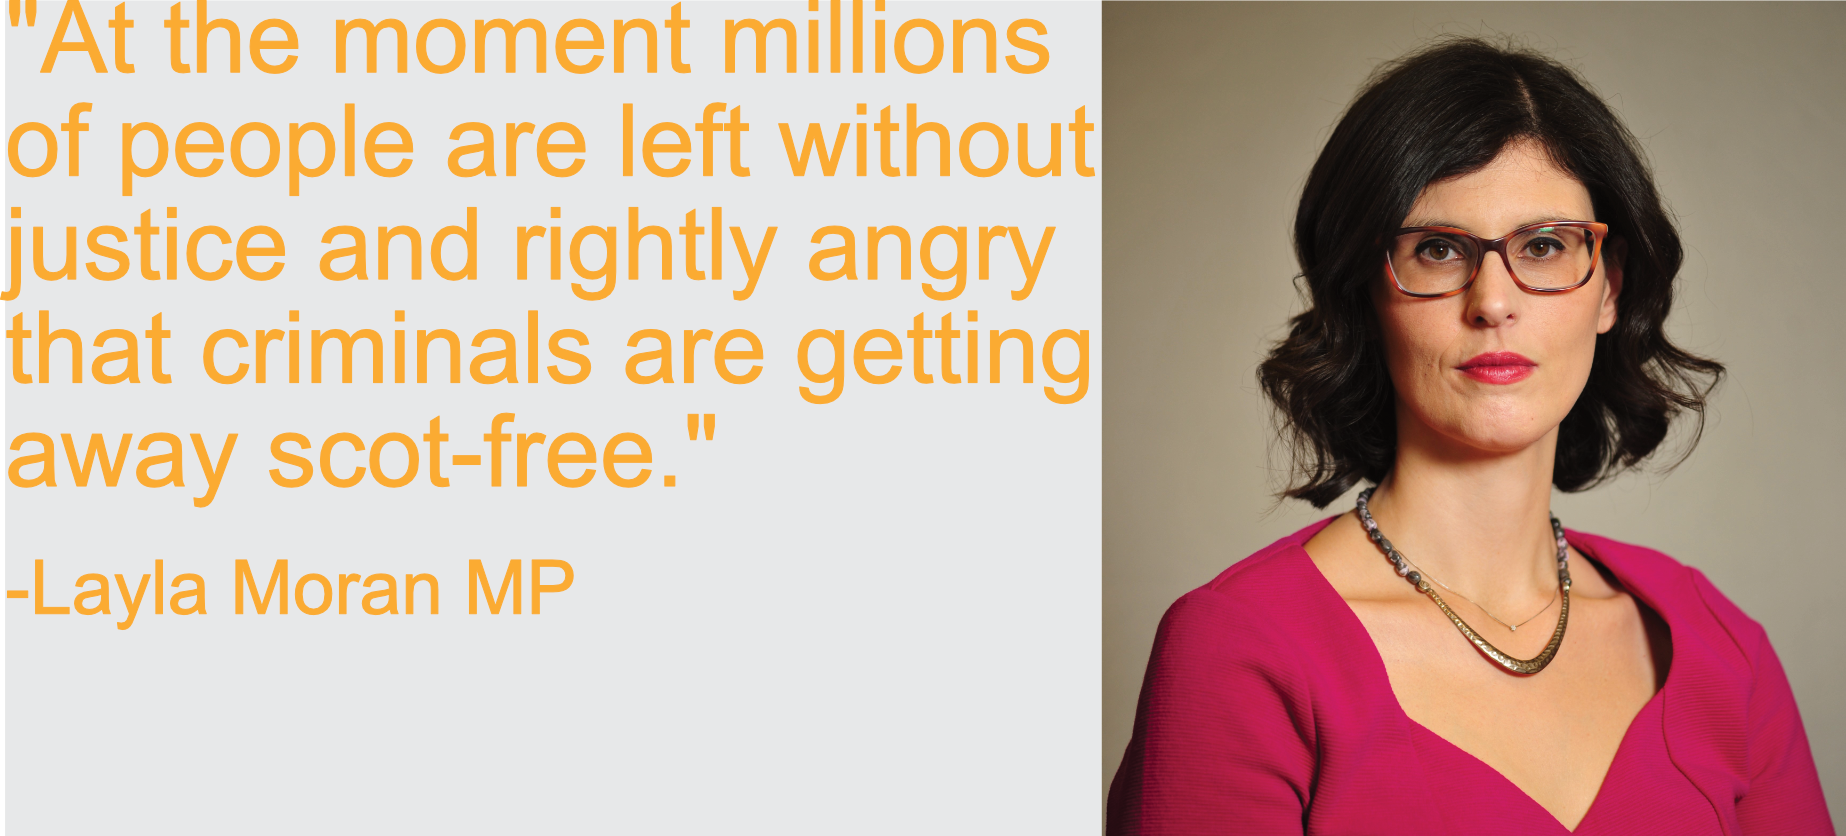 At the moment millions of people are left without justice and rightly angry that criminals are getting away scot-free